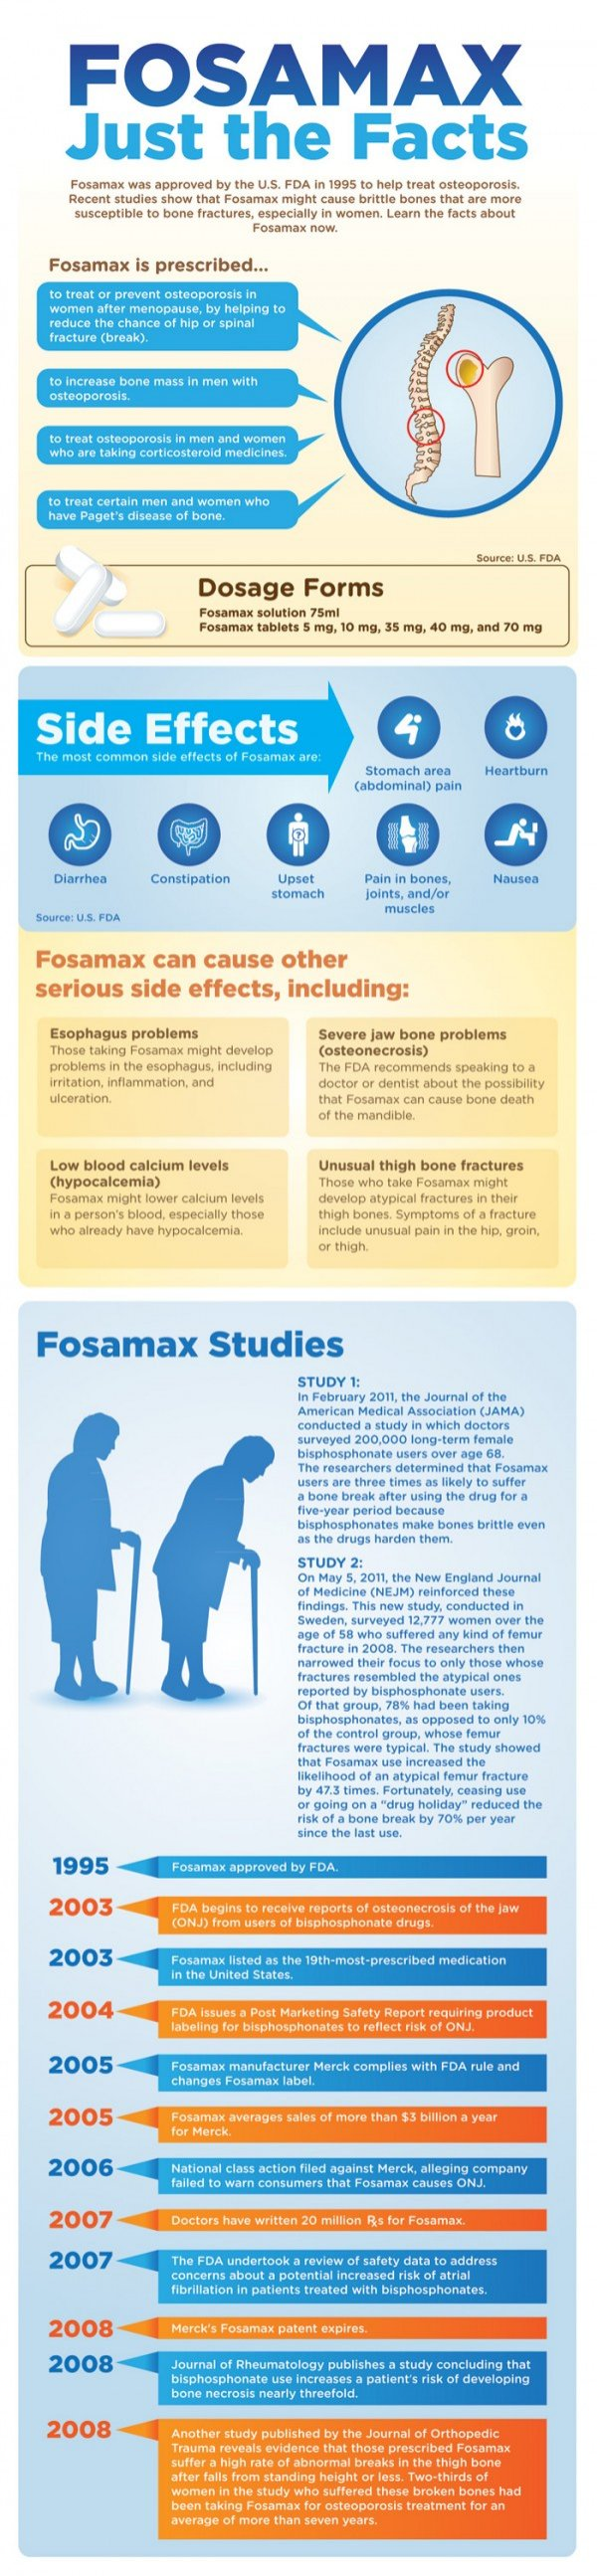 Fosamax: Just the Facts